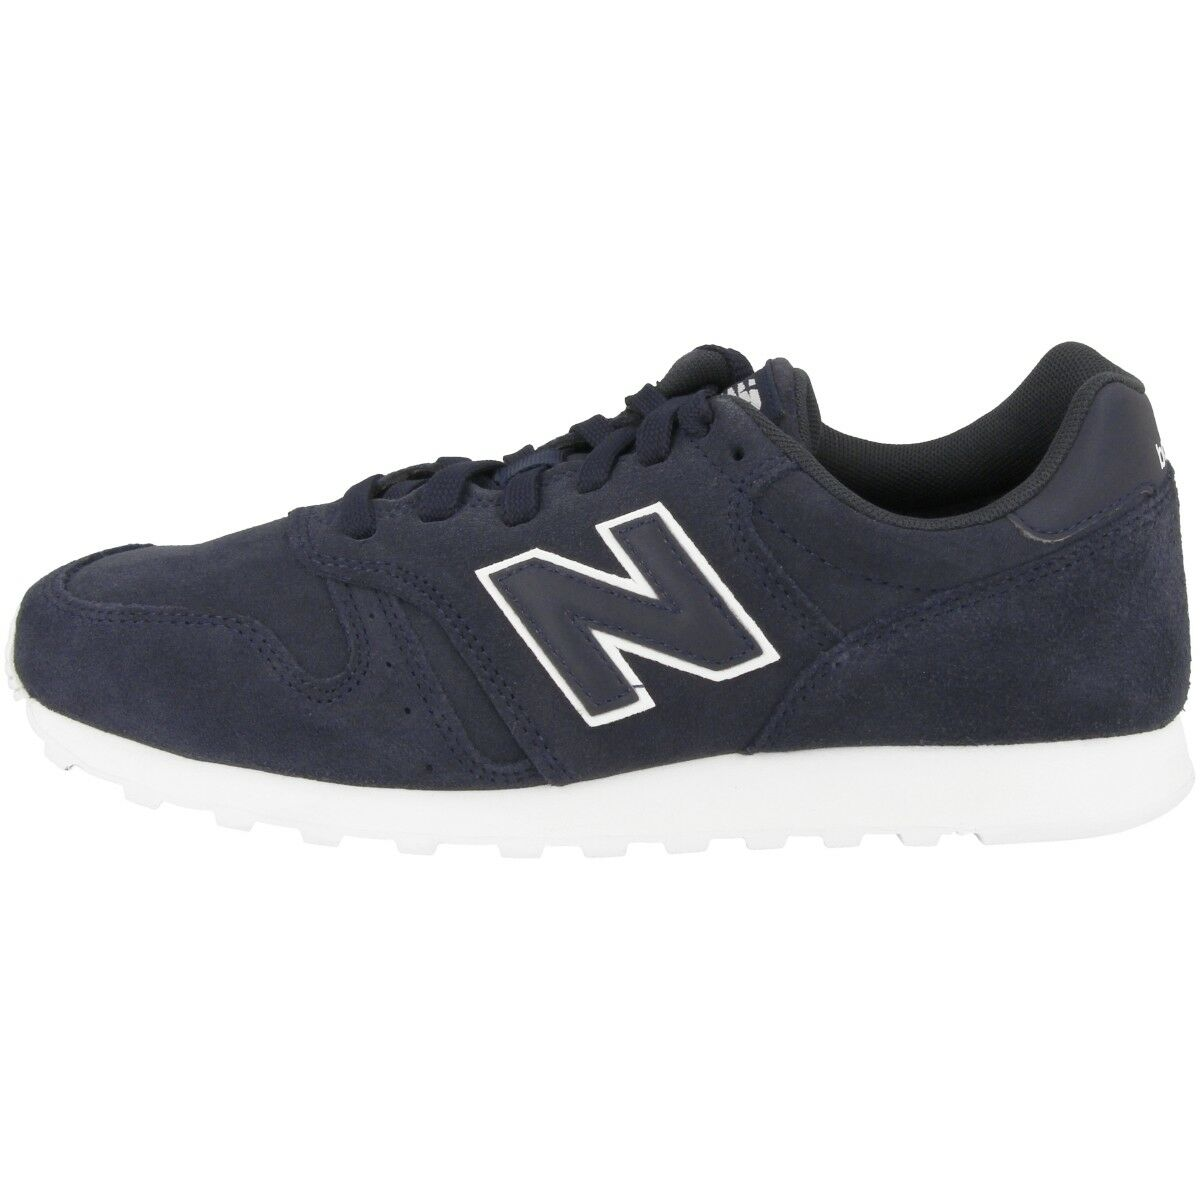 New Balance Ml 373 Tm Casual shoes Trainers Retro Sneakers Navy White ML373TM